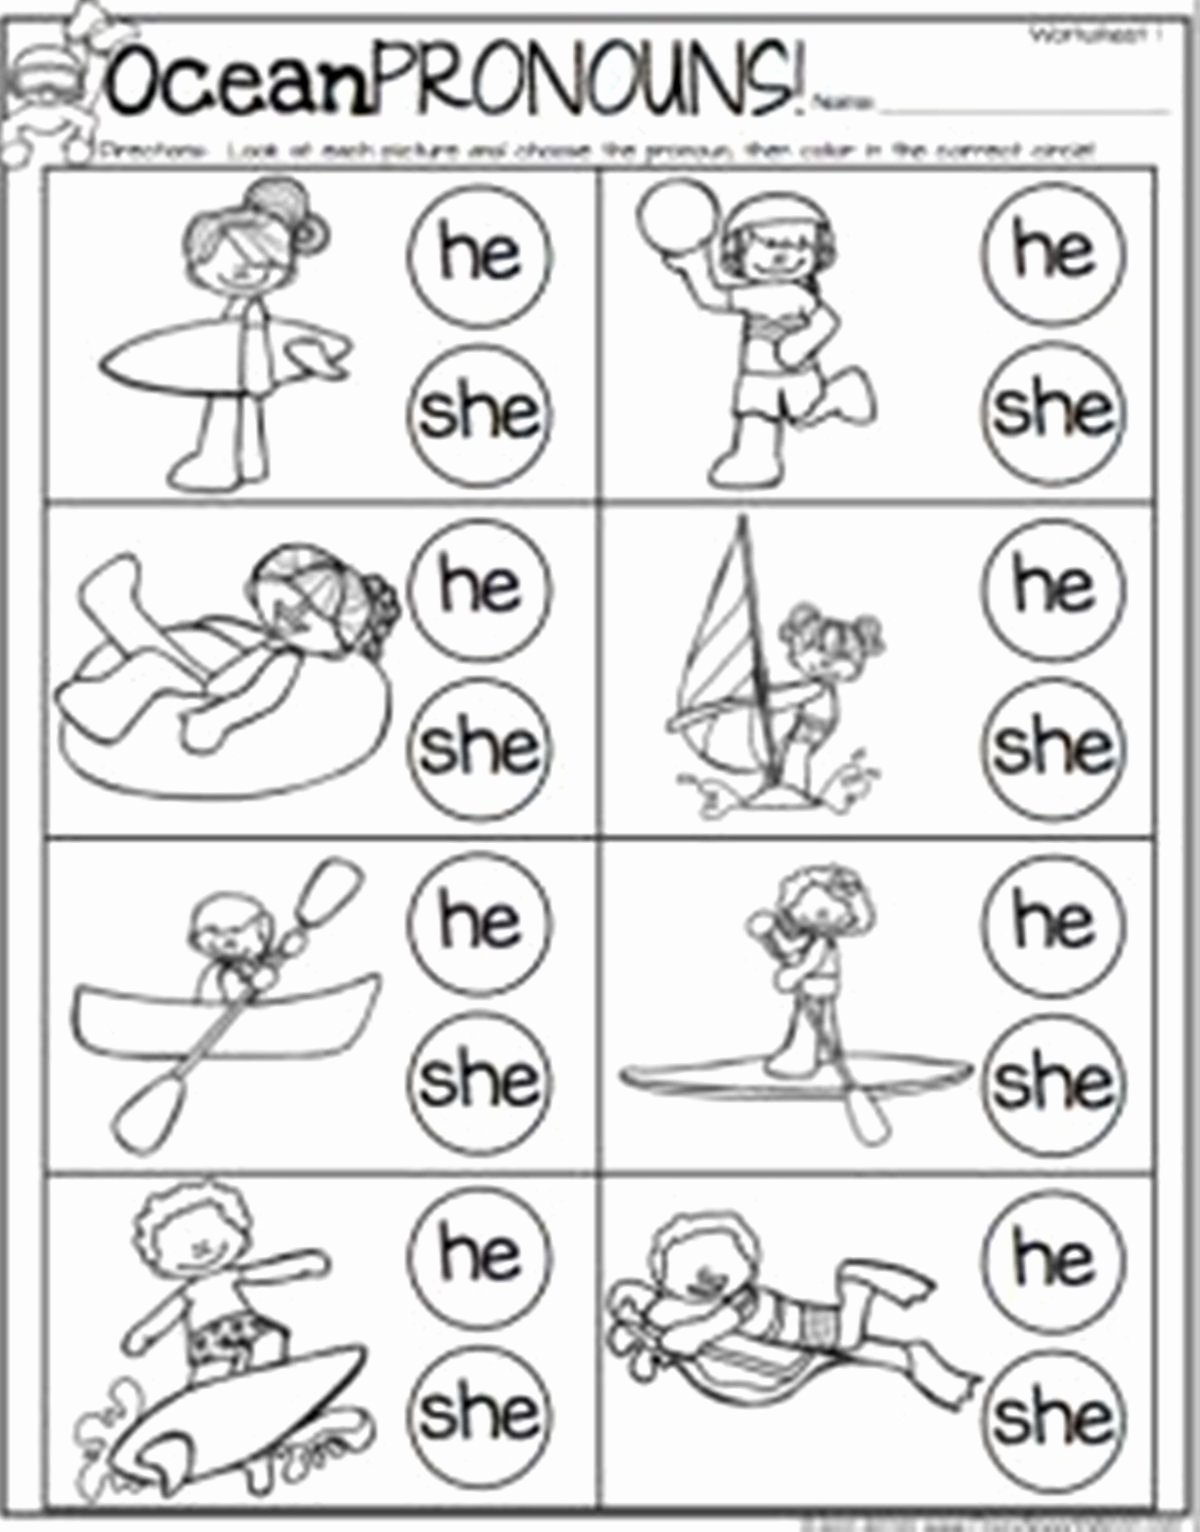 Speech therapy Worksheets for Preschoolers Best Of Pronoun In English